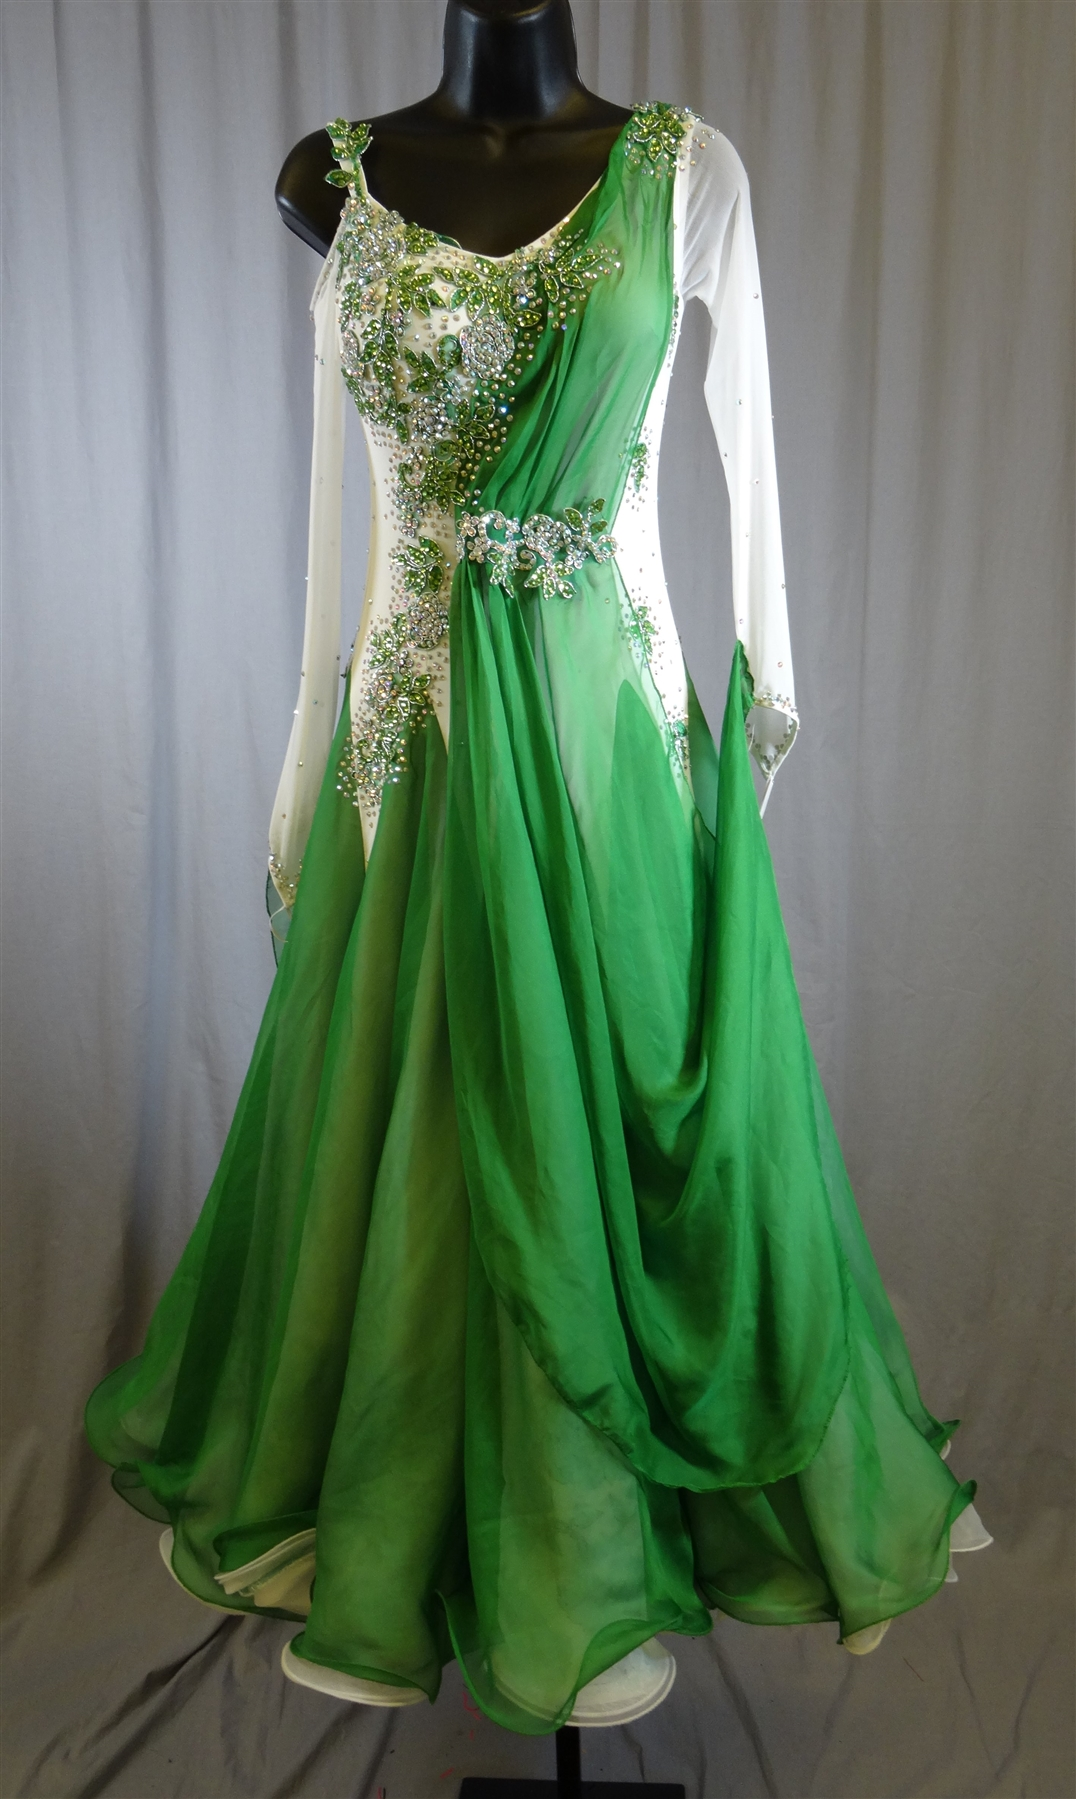 Elegant White Amp Green Long Mesh Sleeves Ballroom Dress